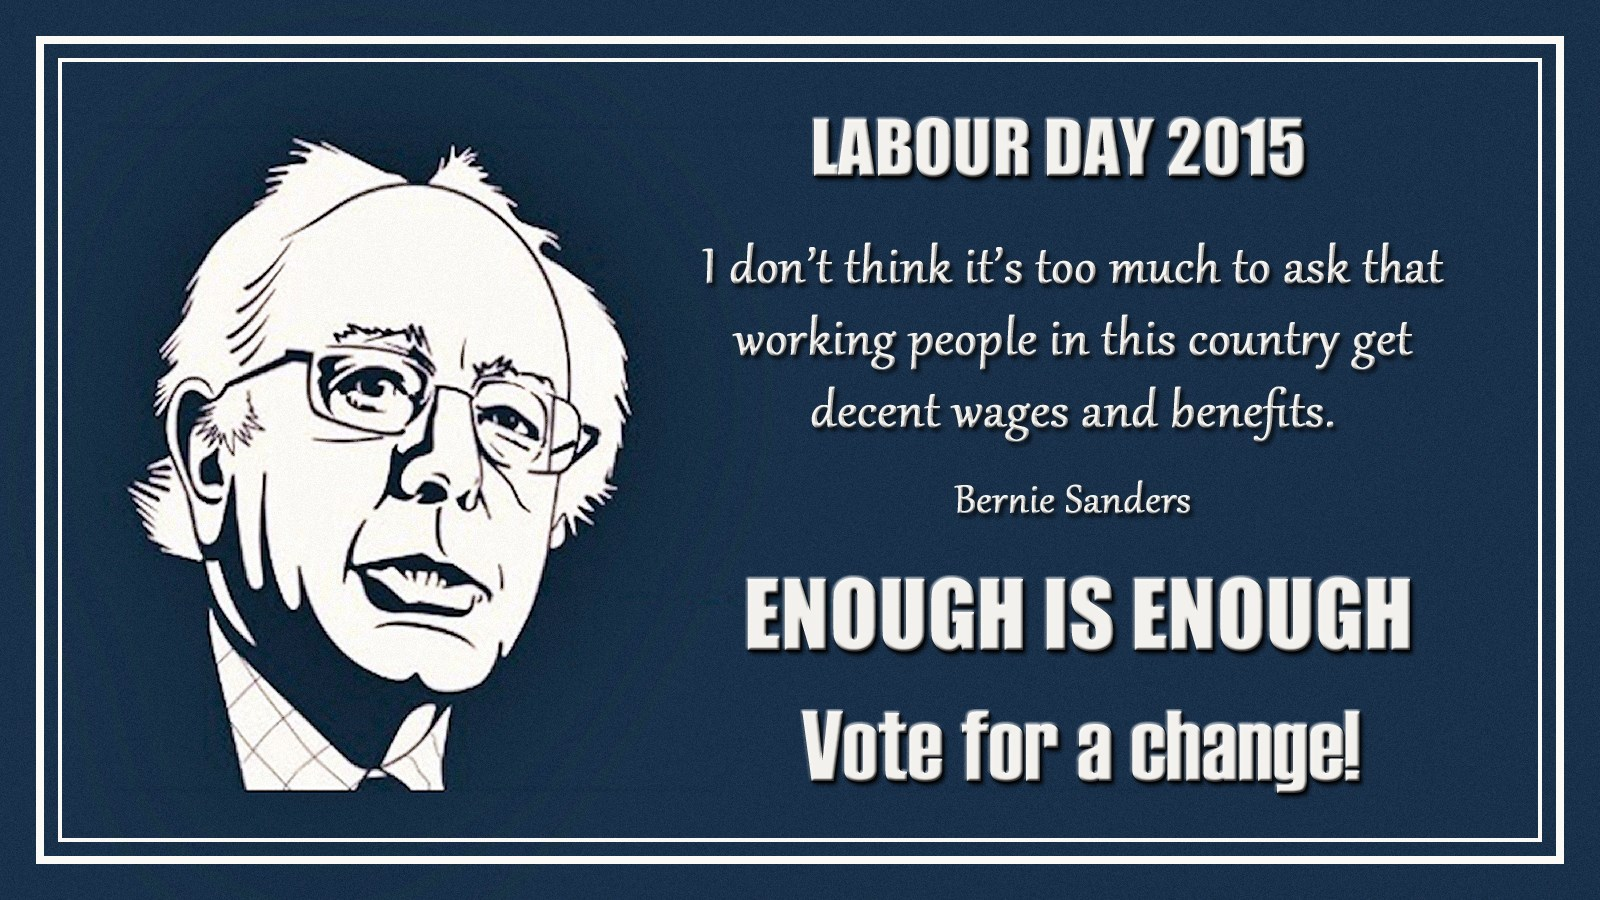 00 bernie sanders labour day wages 070915